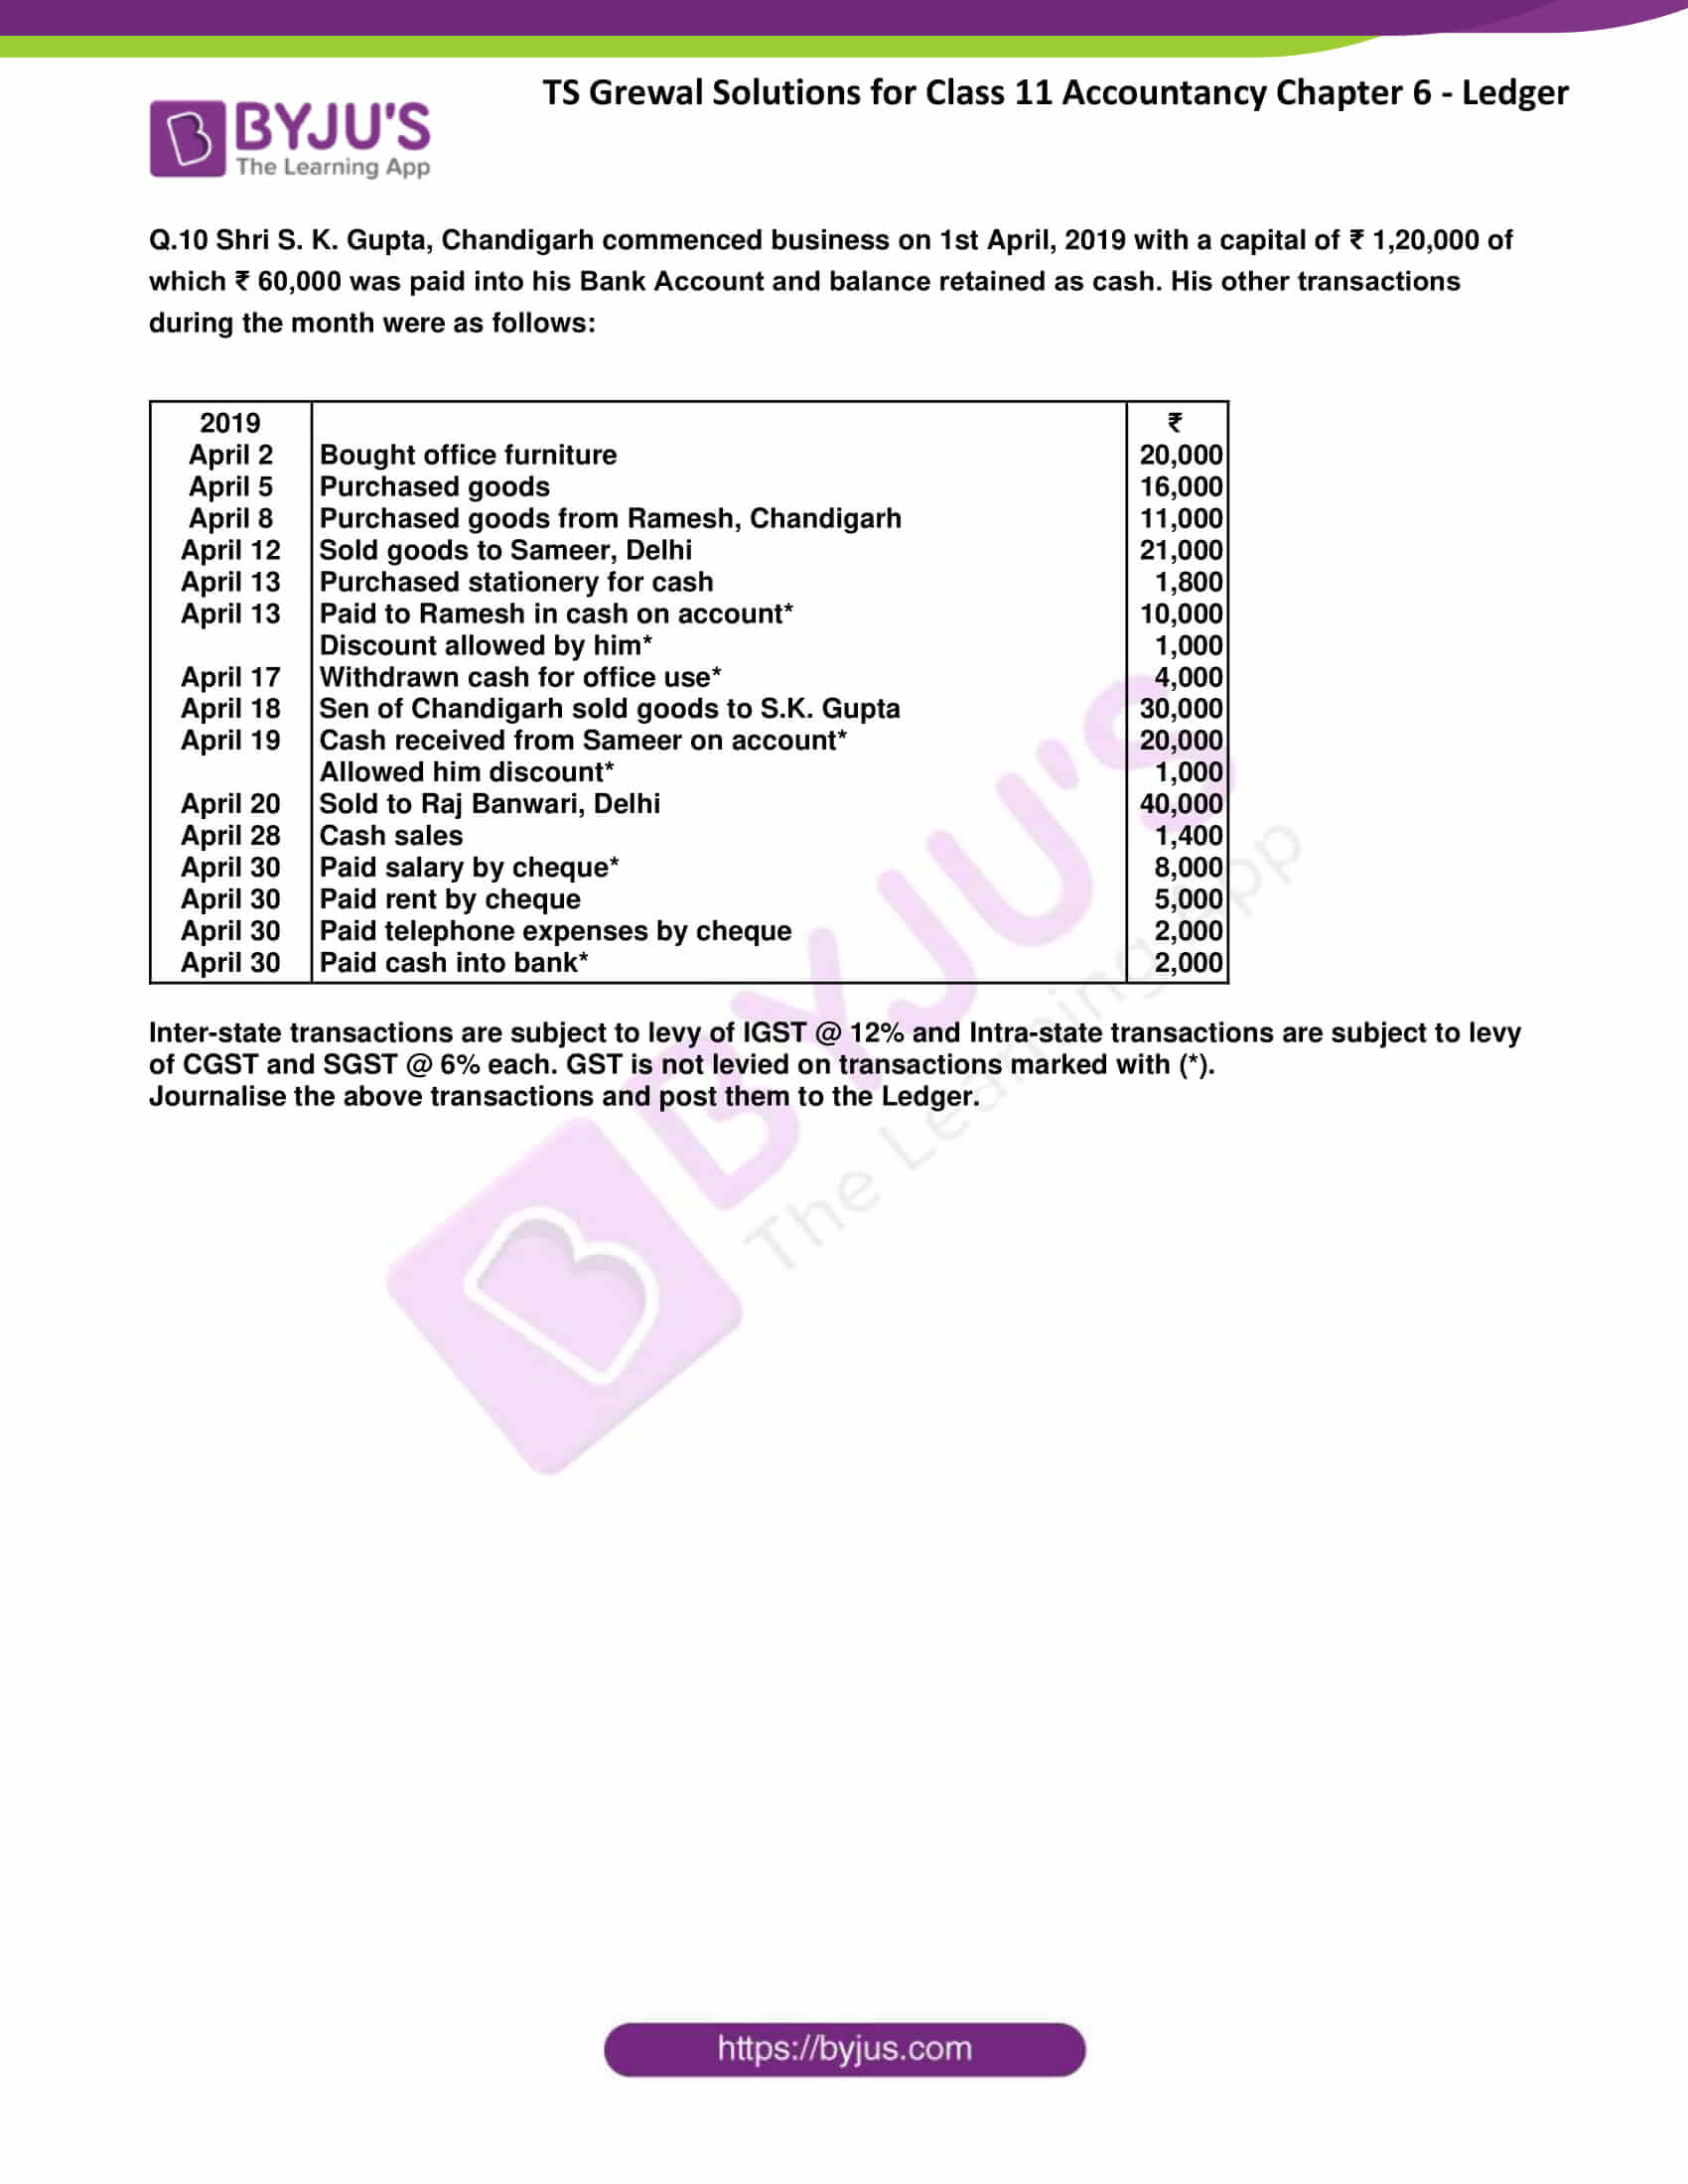 ts grewal class 11 accountancy chapter 6 ledger 61